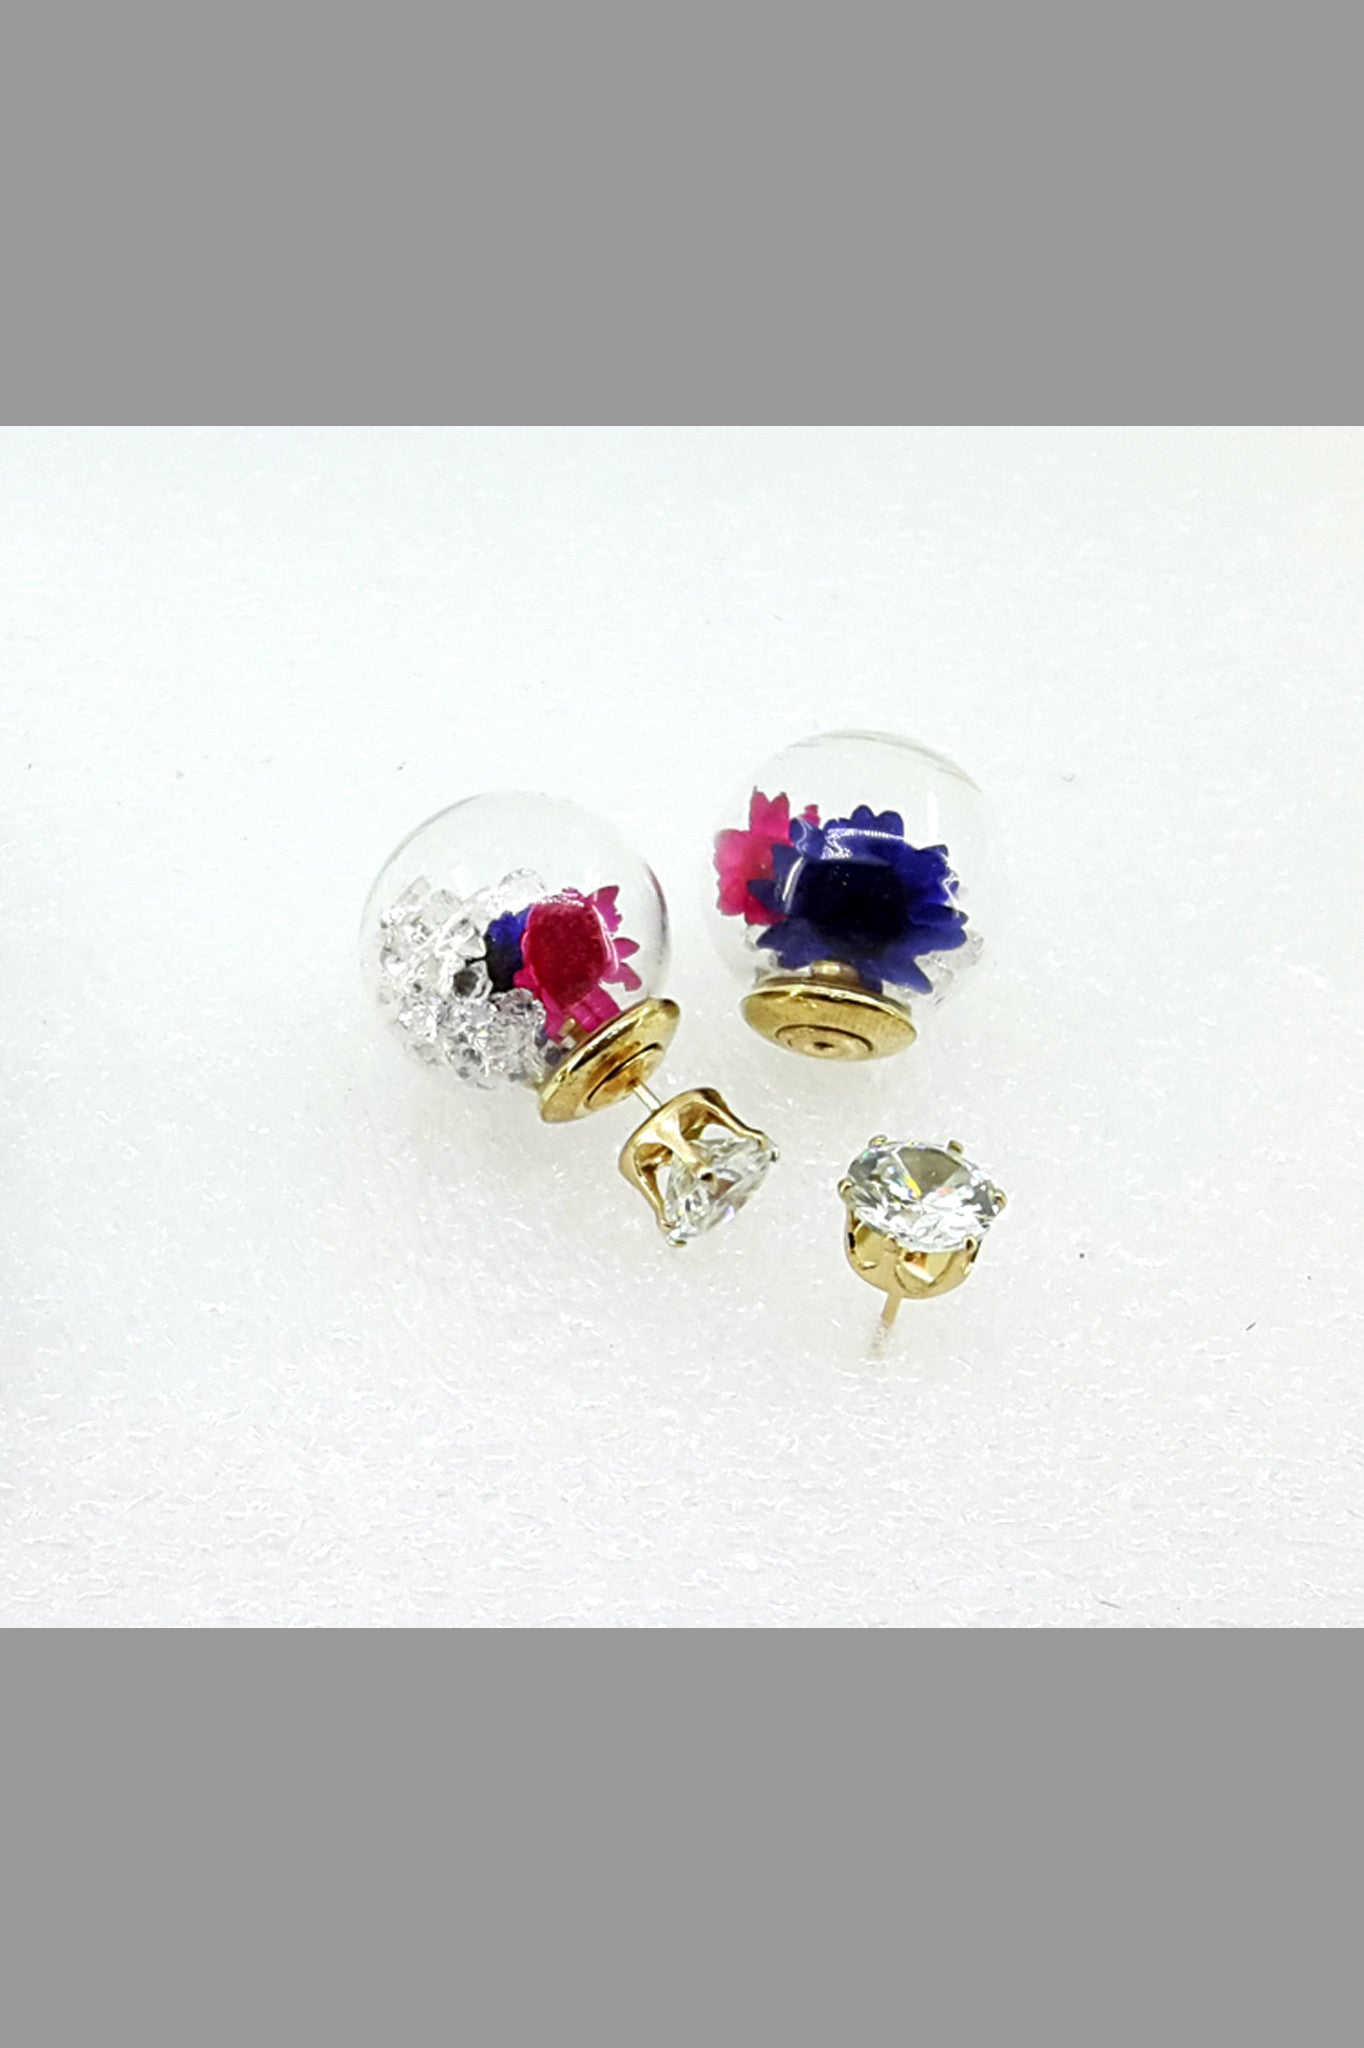 The Double Face Brand Jewelry Stud Earring For Women (Blue Flower)